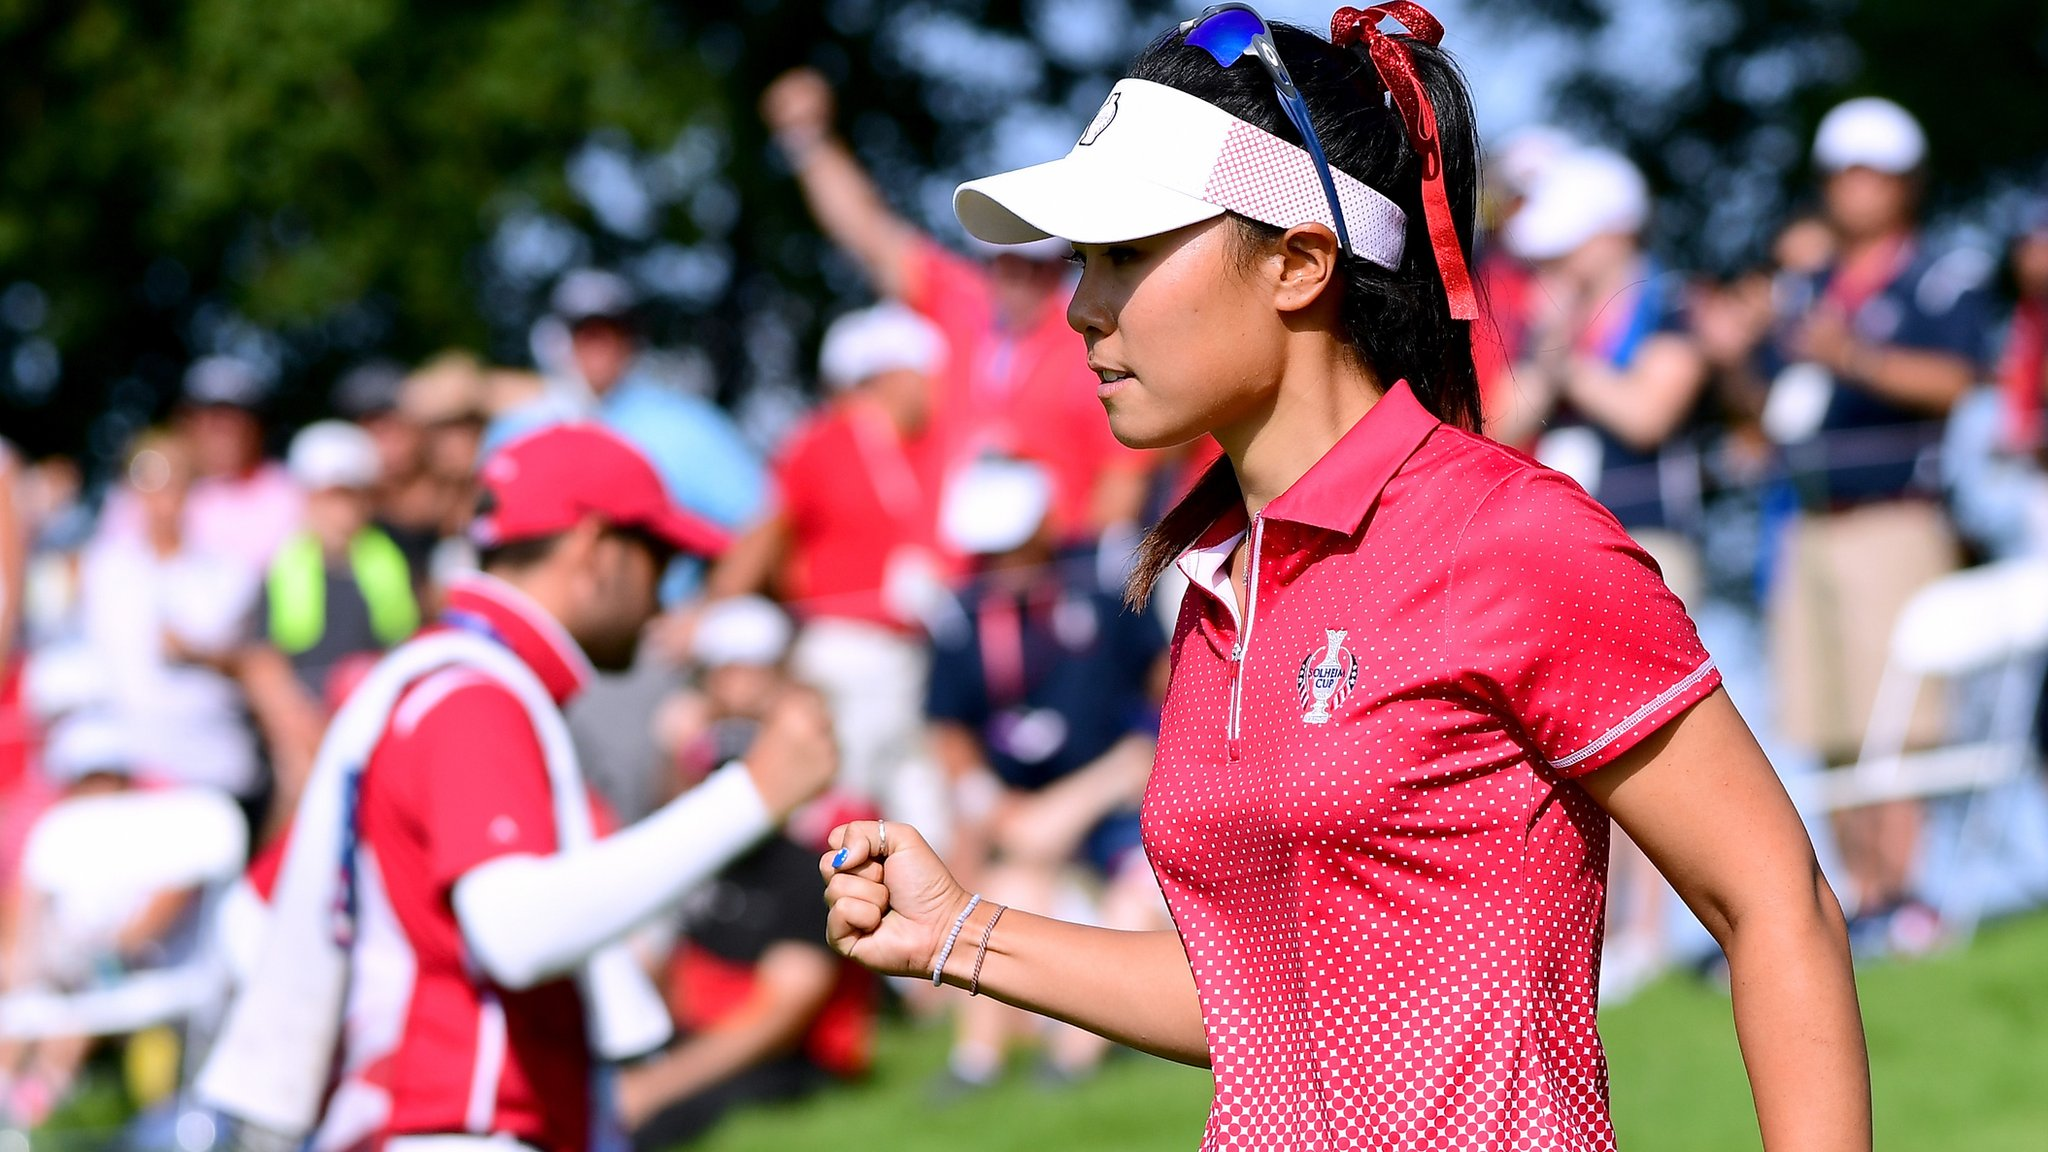 Solheim Cup 2017: United States lead Europe 5½ - 2½ after afternoon clean sweep